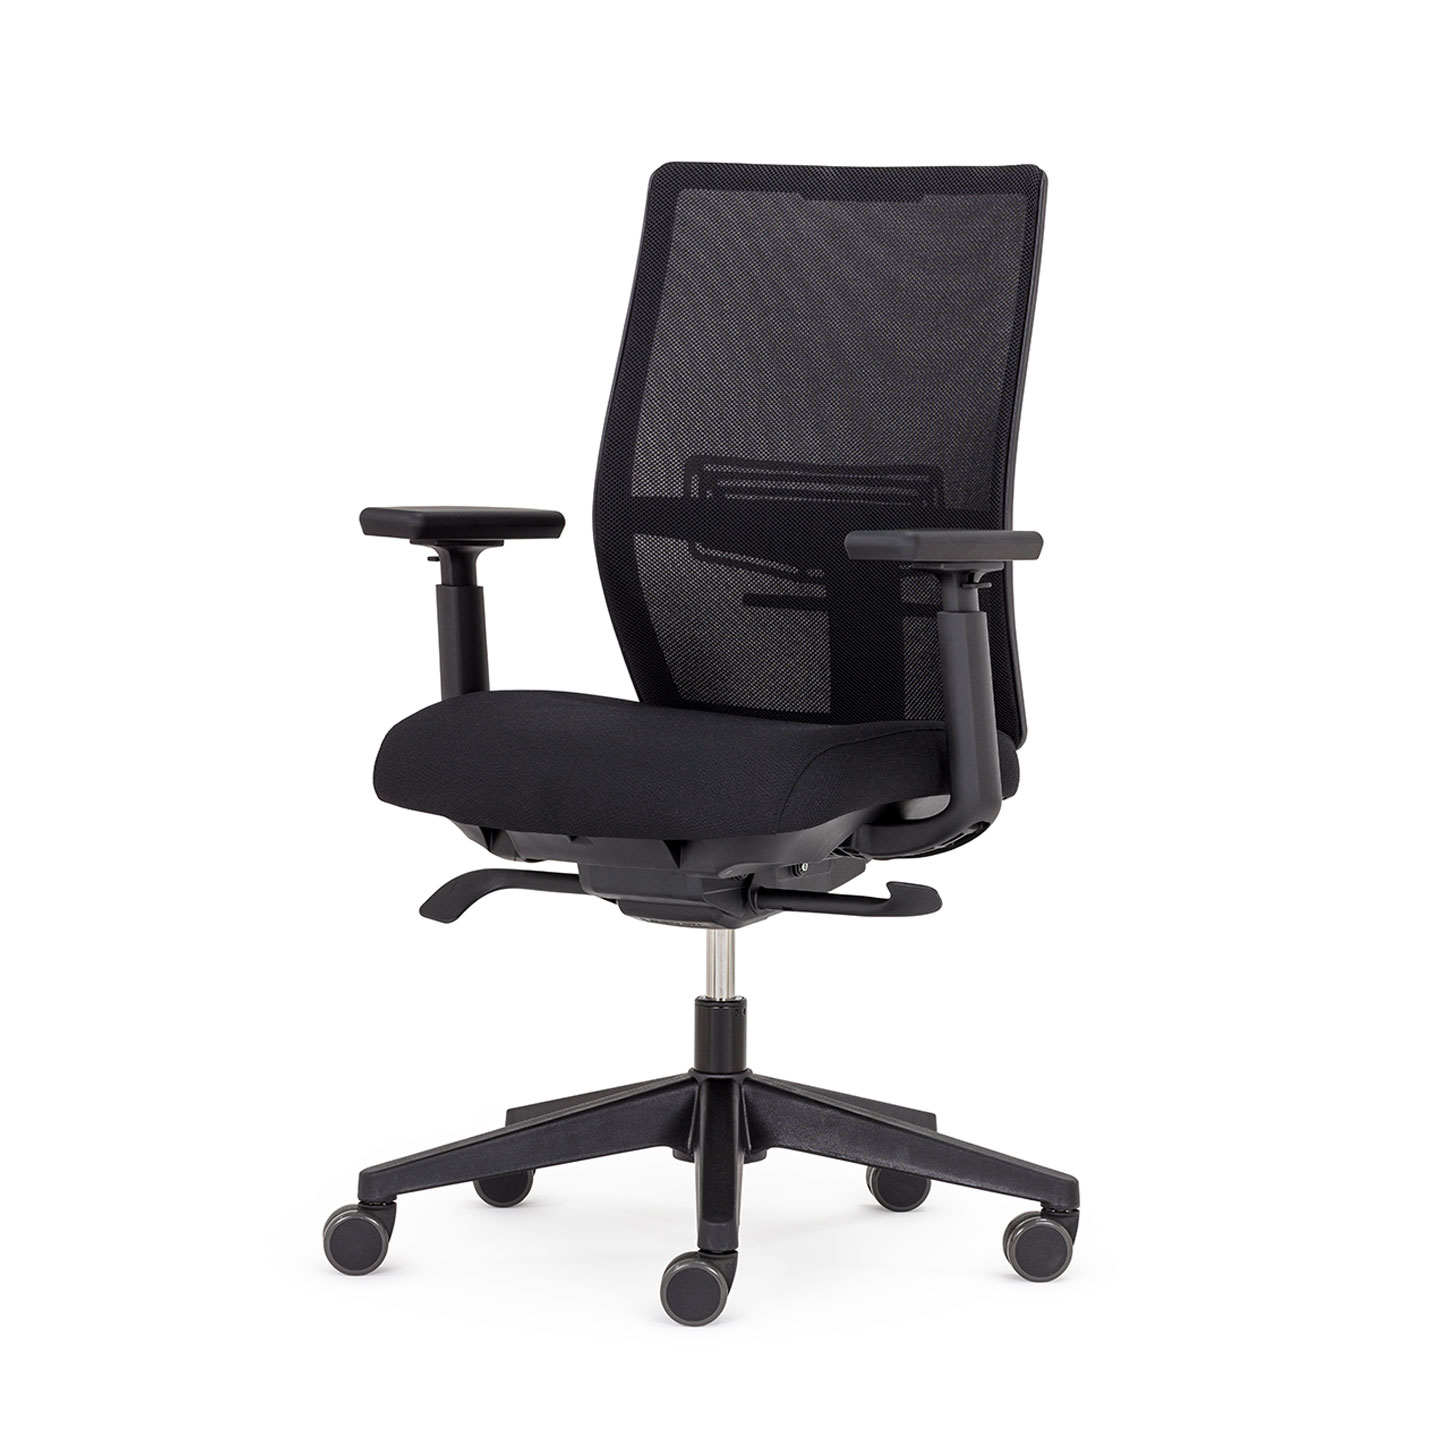 Black Aloha Active office chair with mesh back